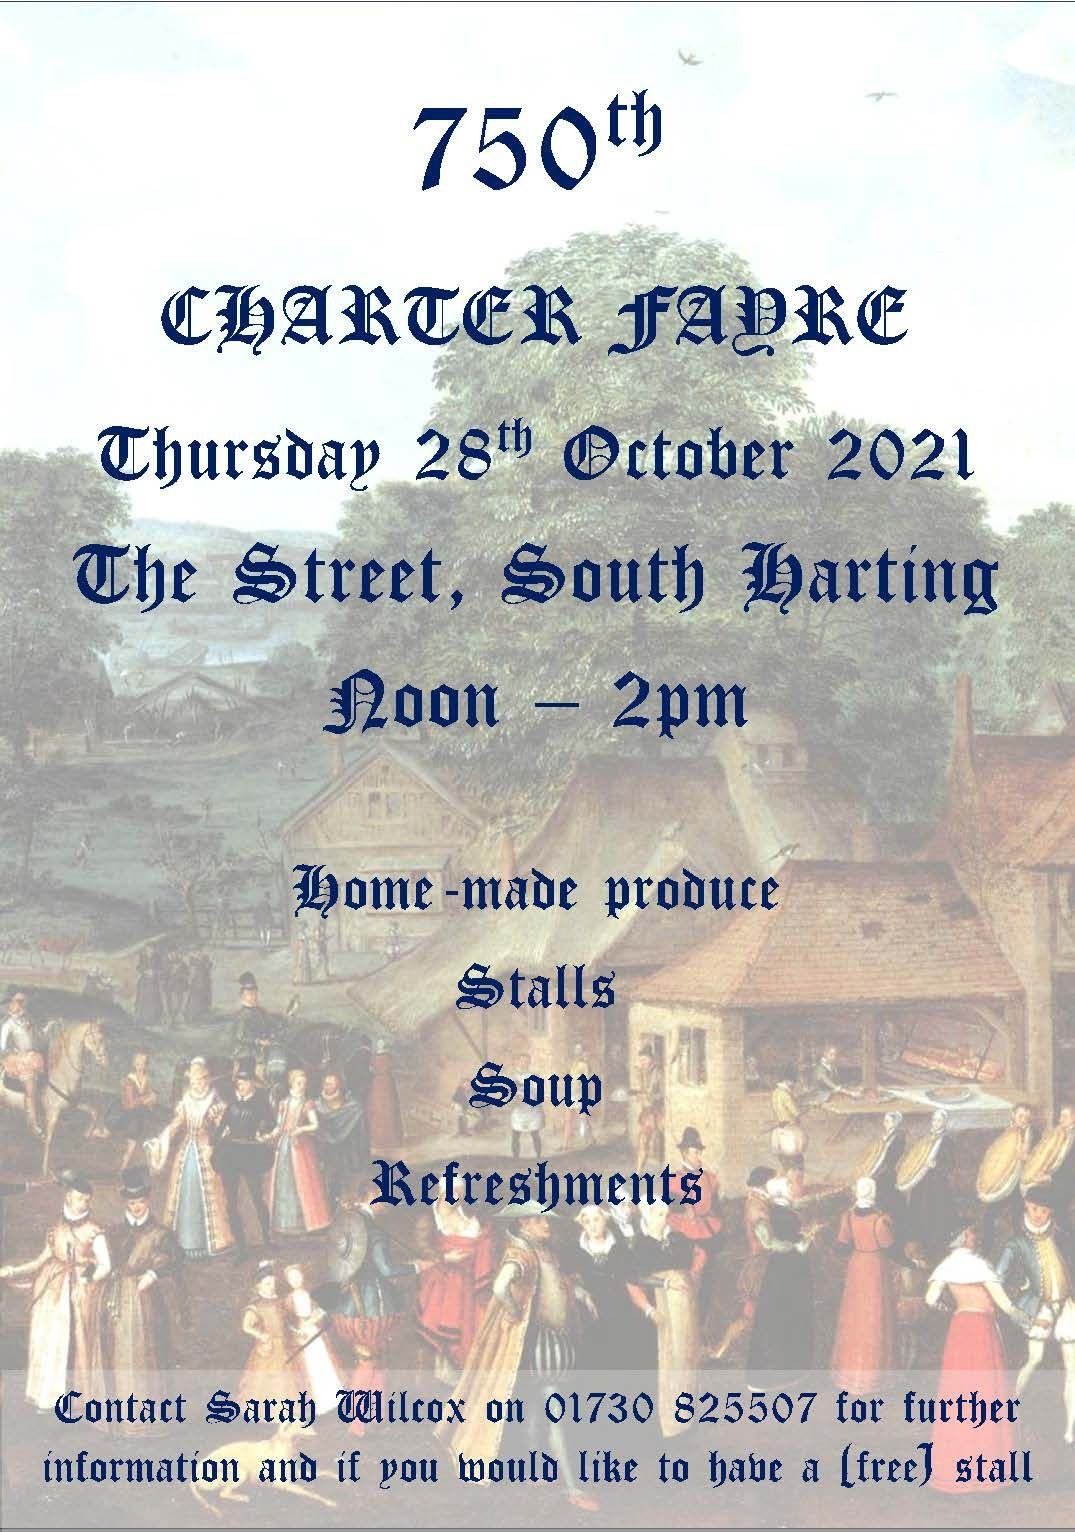 750th Charter Fayre